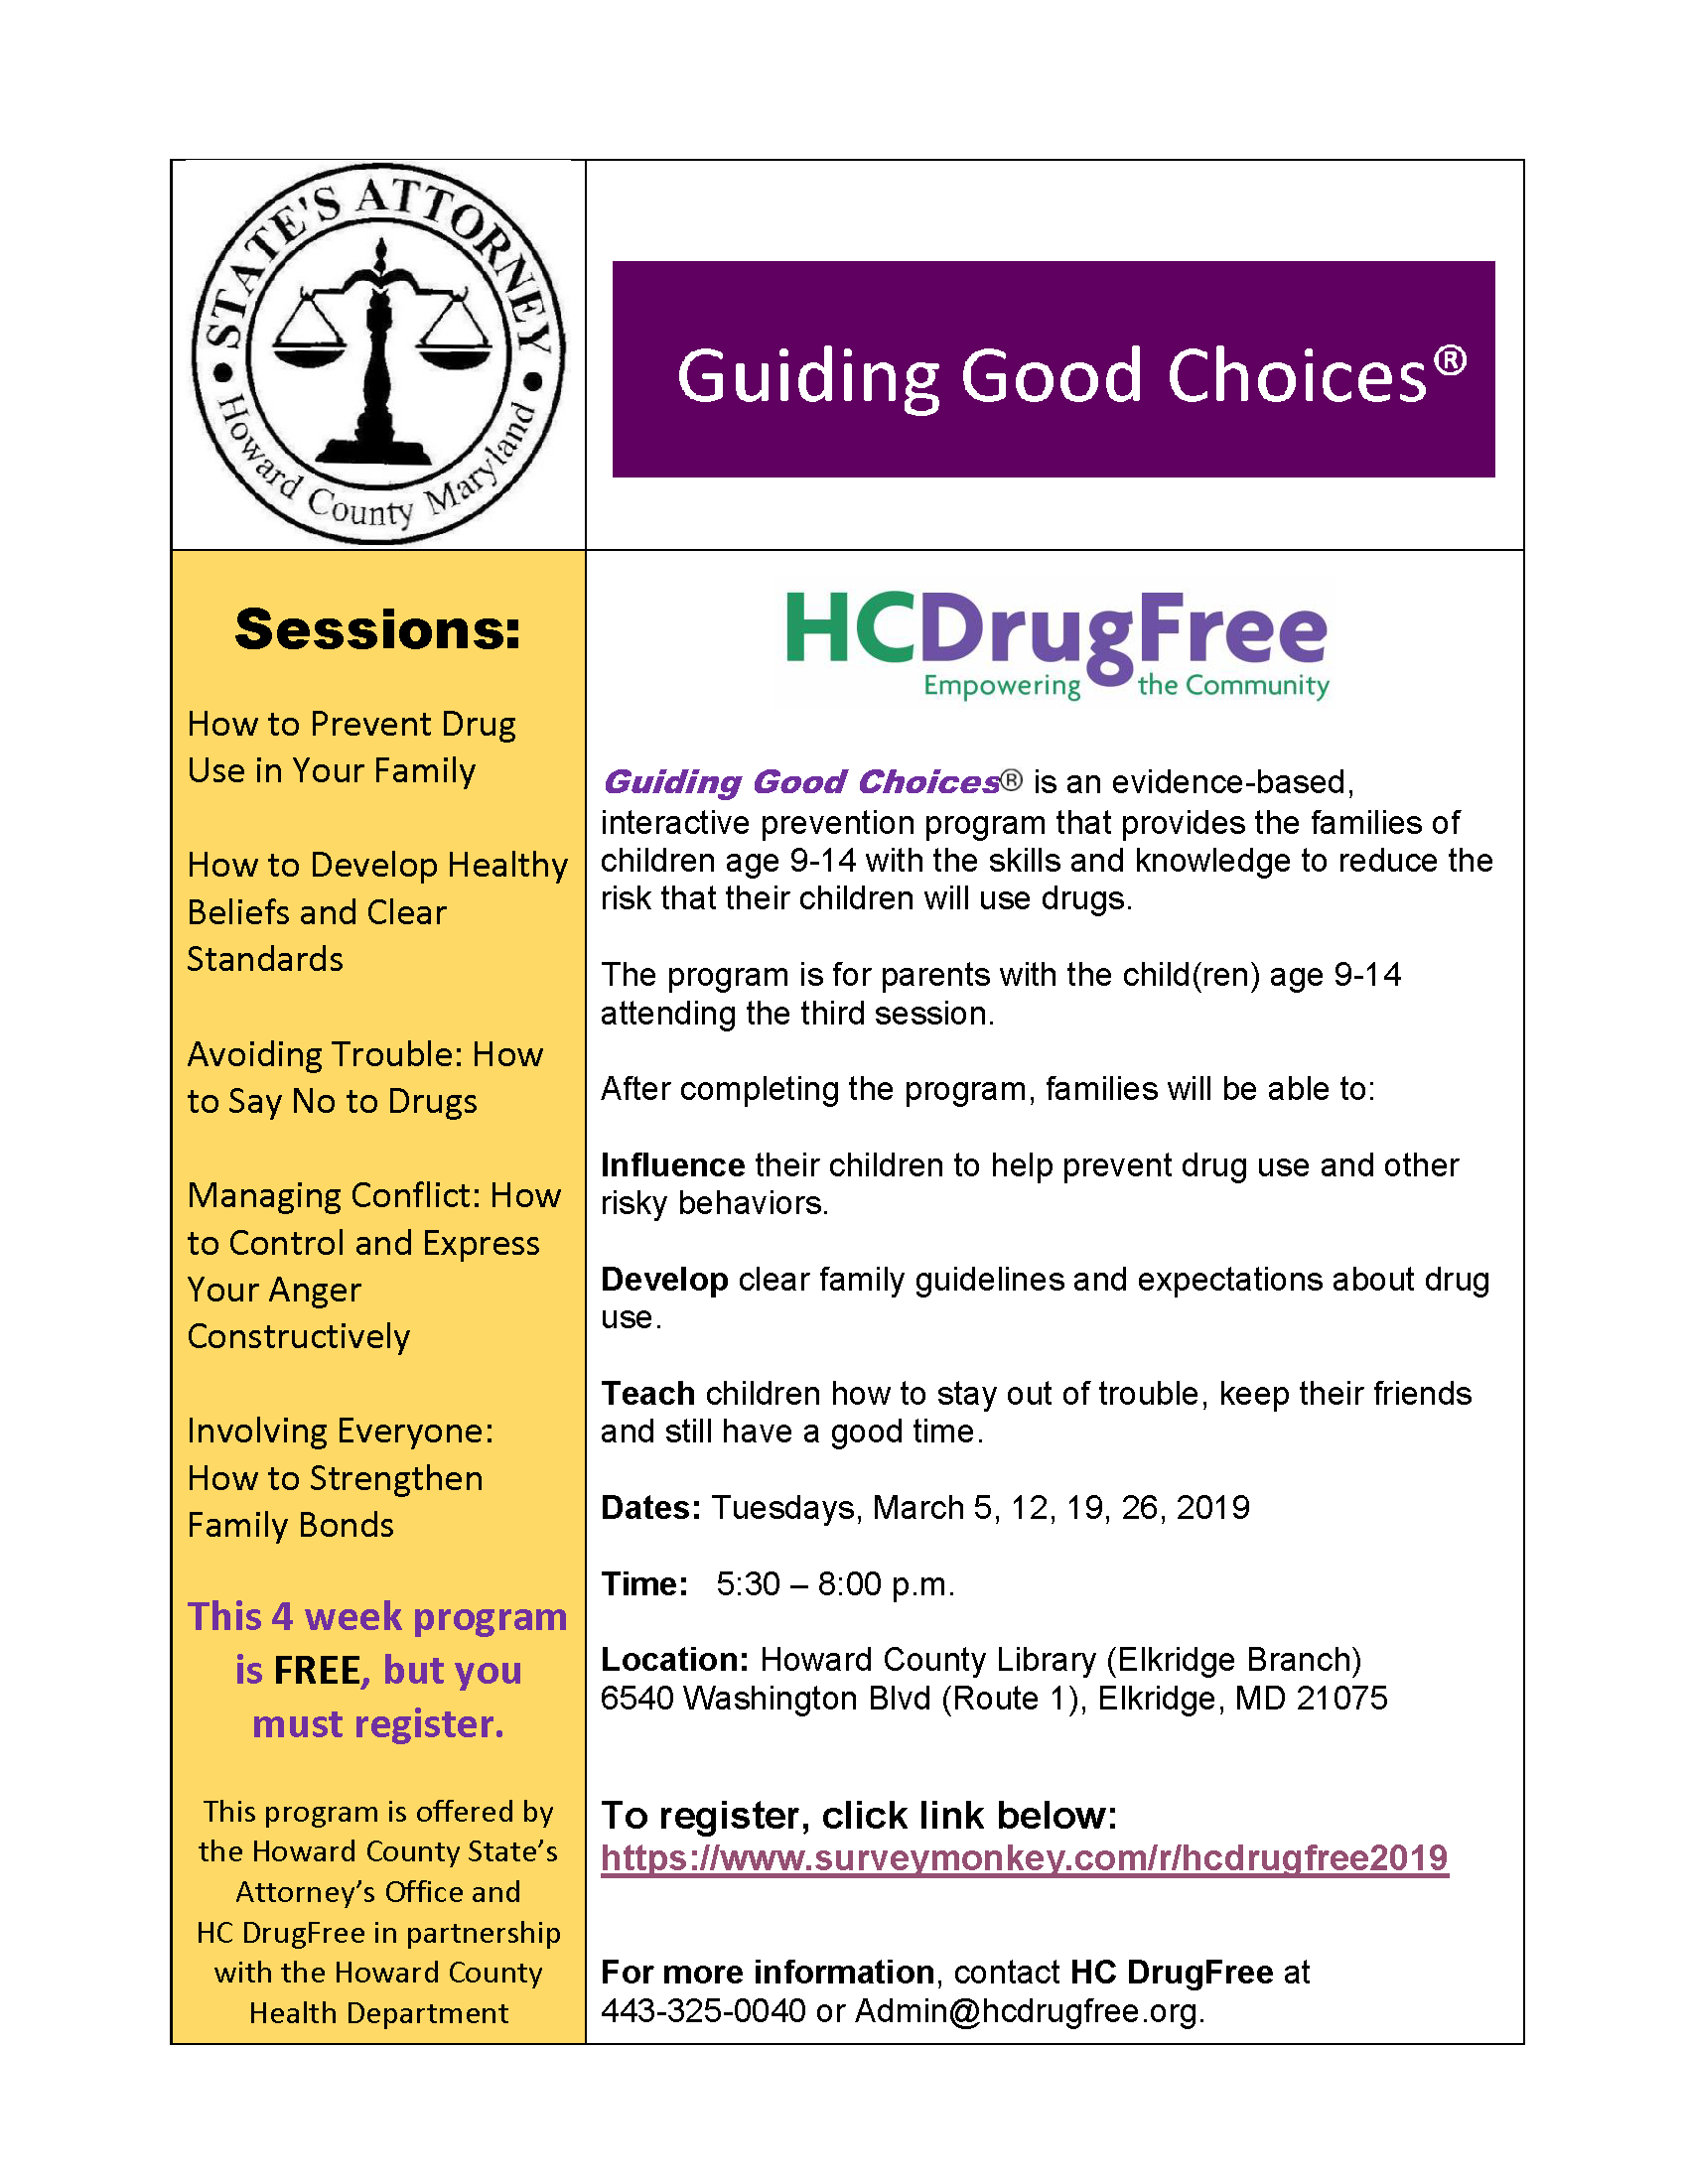 GGC Flyer March 2019 HCDRUG StatesAttorney